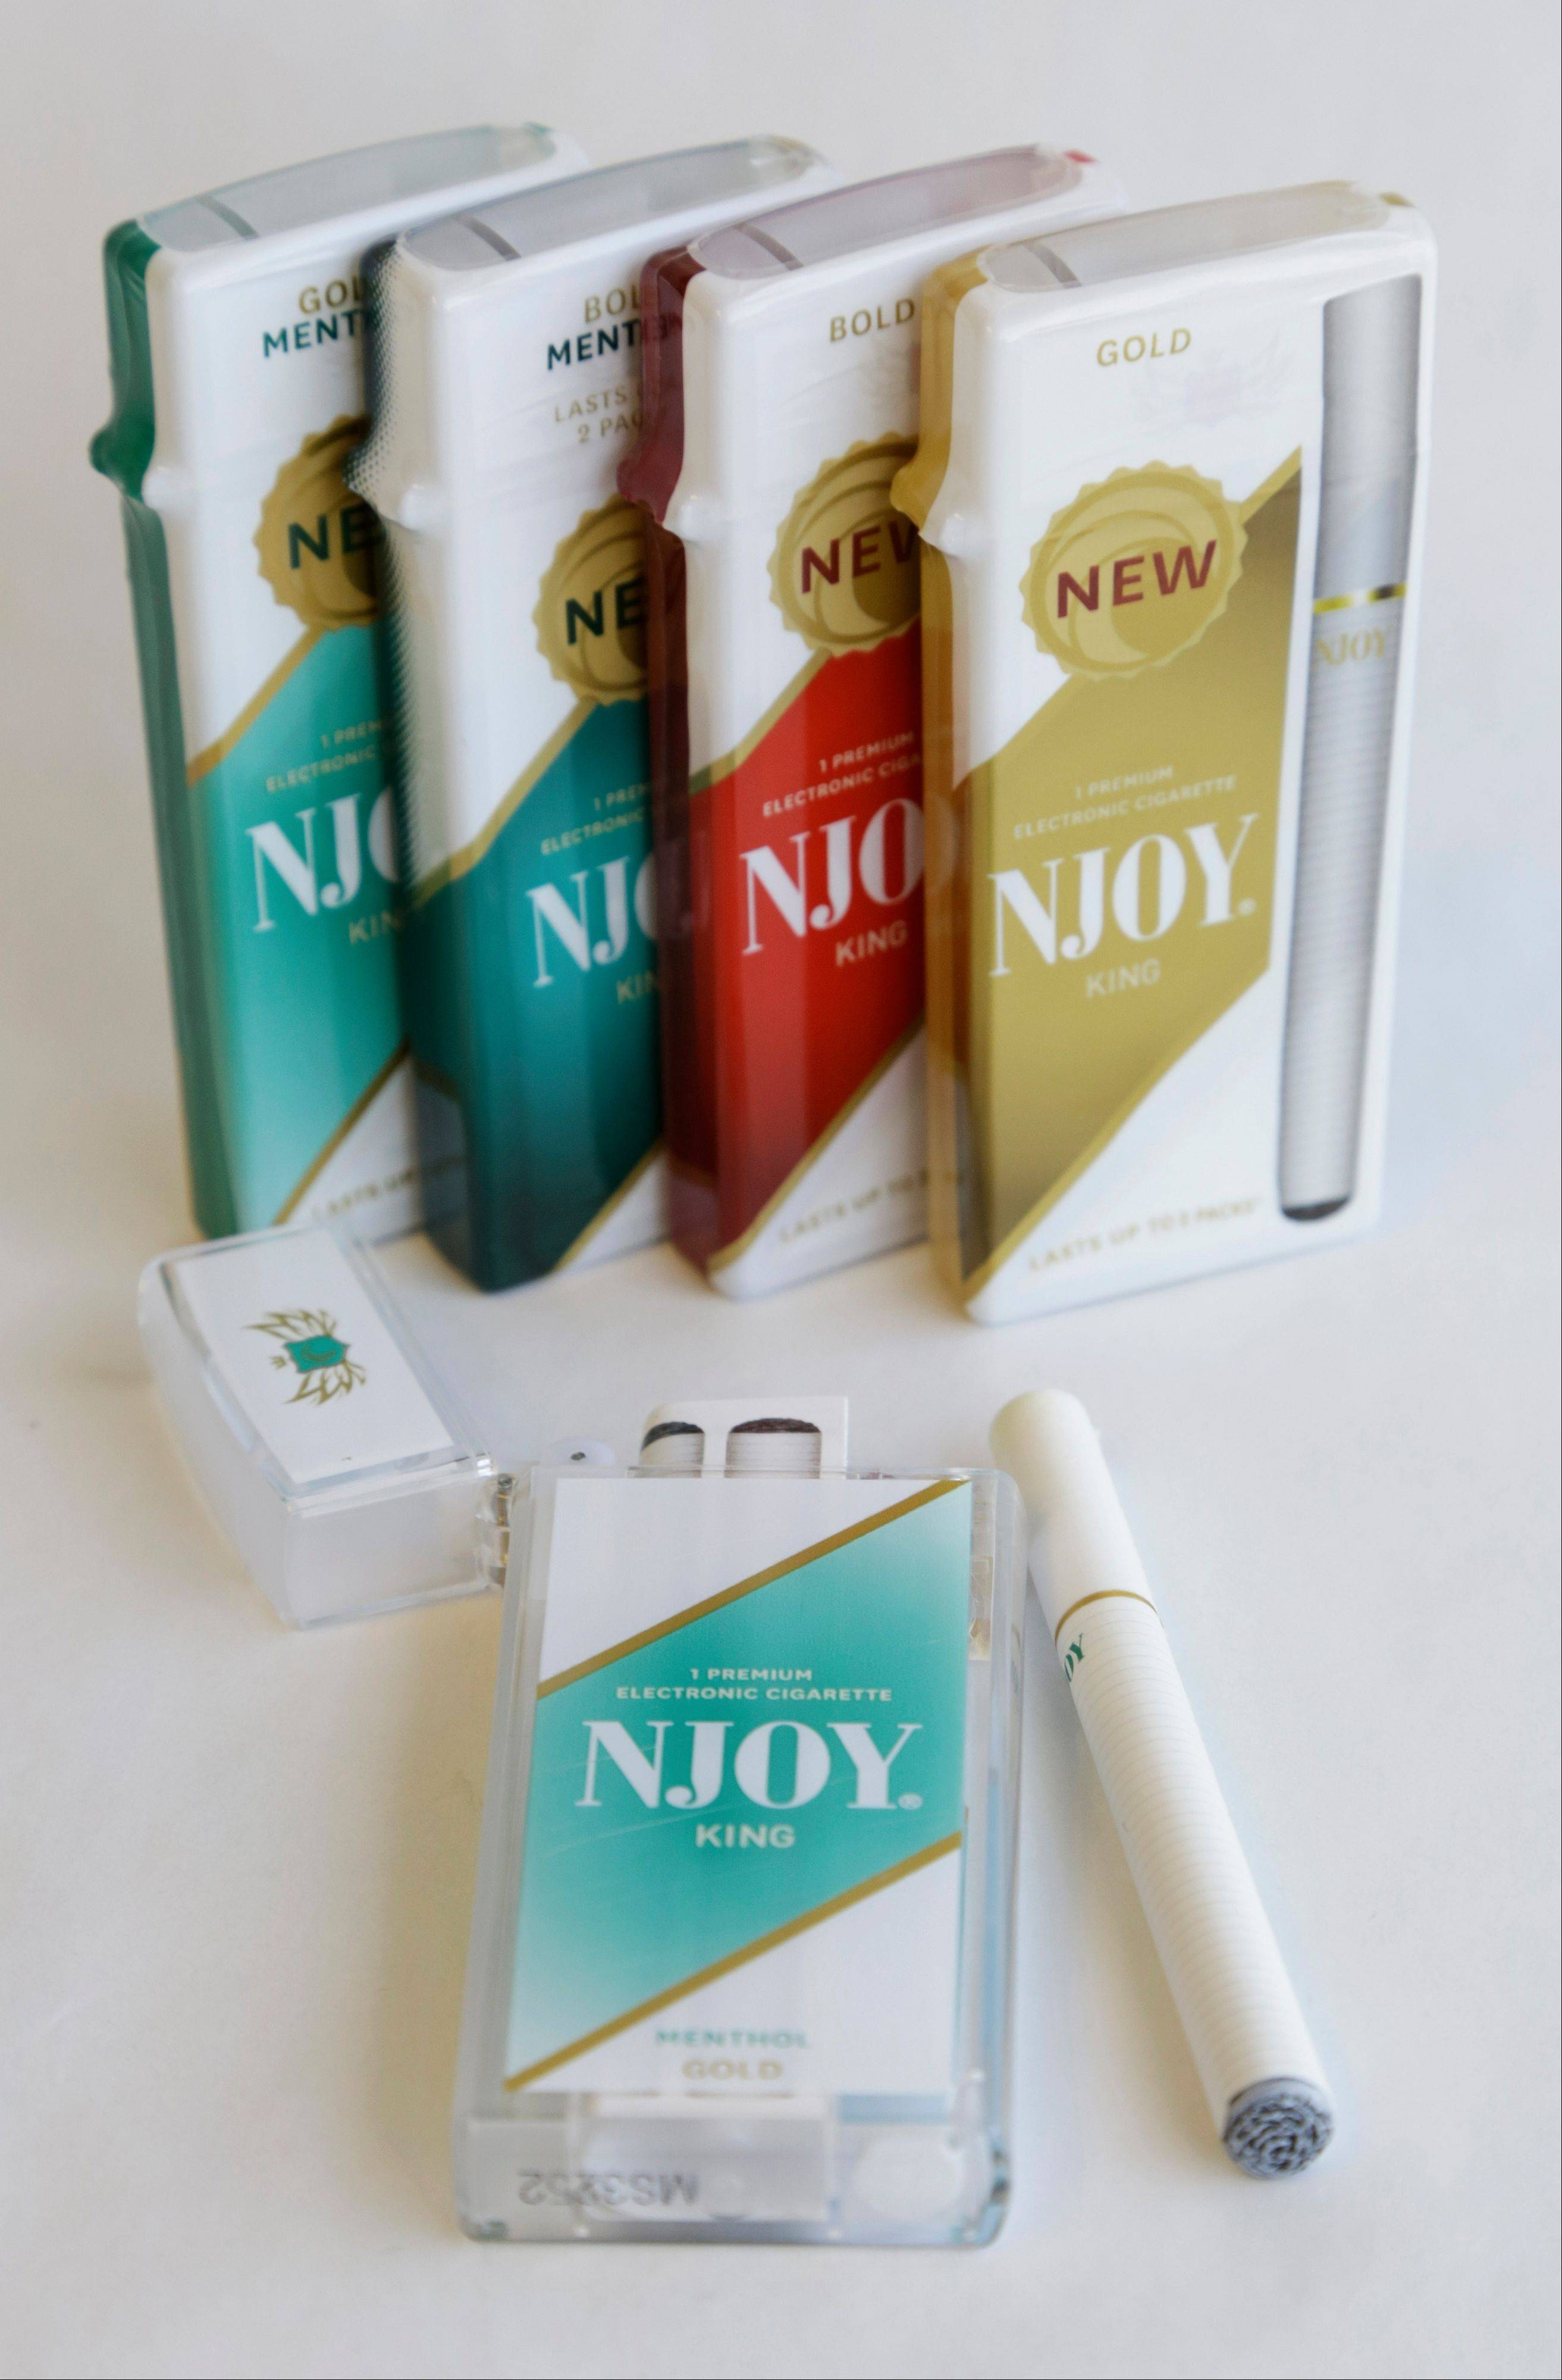 Several different versions of the NJOY electronic cigarettes are seen. Former U.S. Surgeon General Richard Carmona, who highlighted the dangers of secondhand smoke and supported a ban on all tobacco products, is joining the board of directors for NJOY Inc., the nation�s leading electronic cigarette company � a move that could bring increased legitimacy to e-cigarettes as a viable alternative to traditional cigarettes.